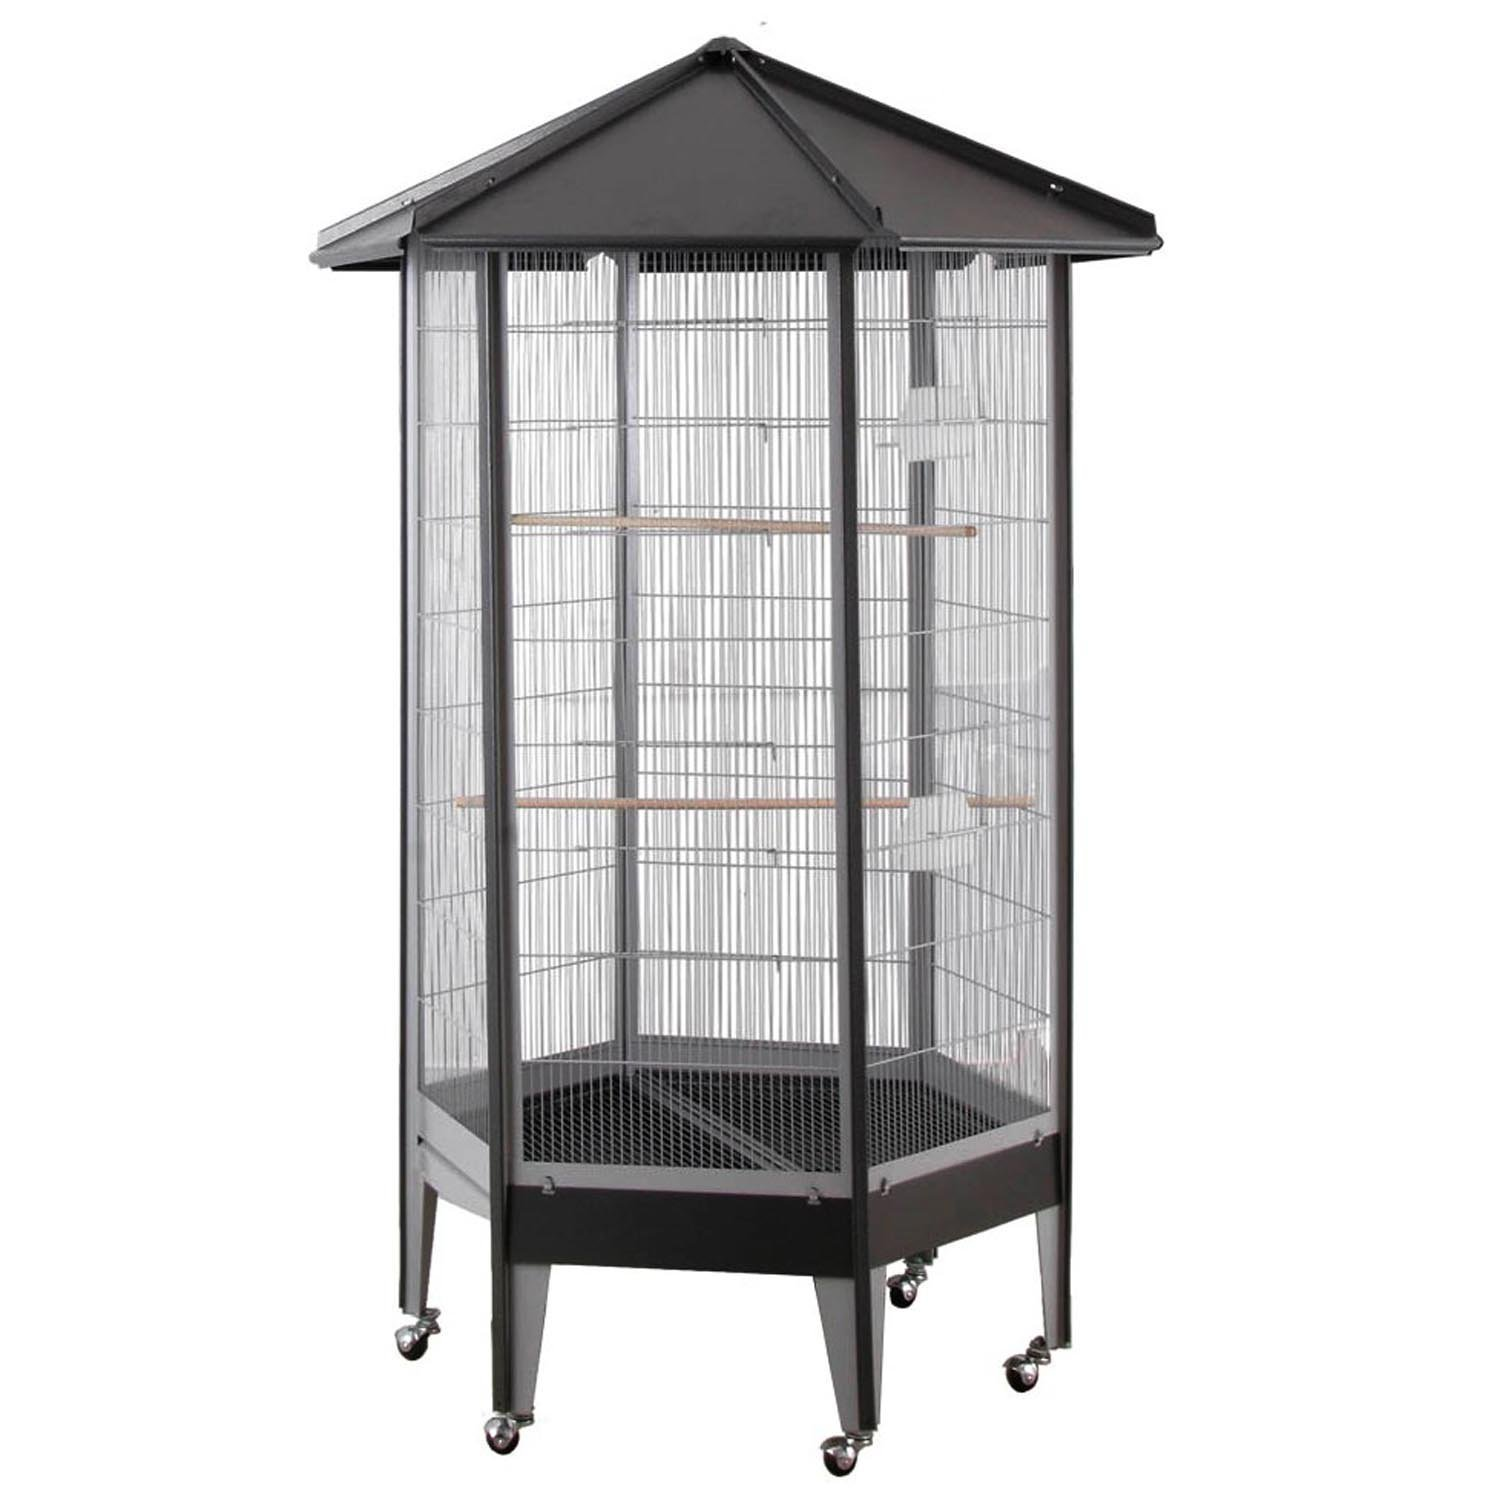 61818 HQ Large Parrot Aviary Cage 36'' x 31'' x 68'' - Black